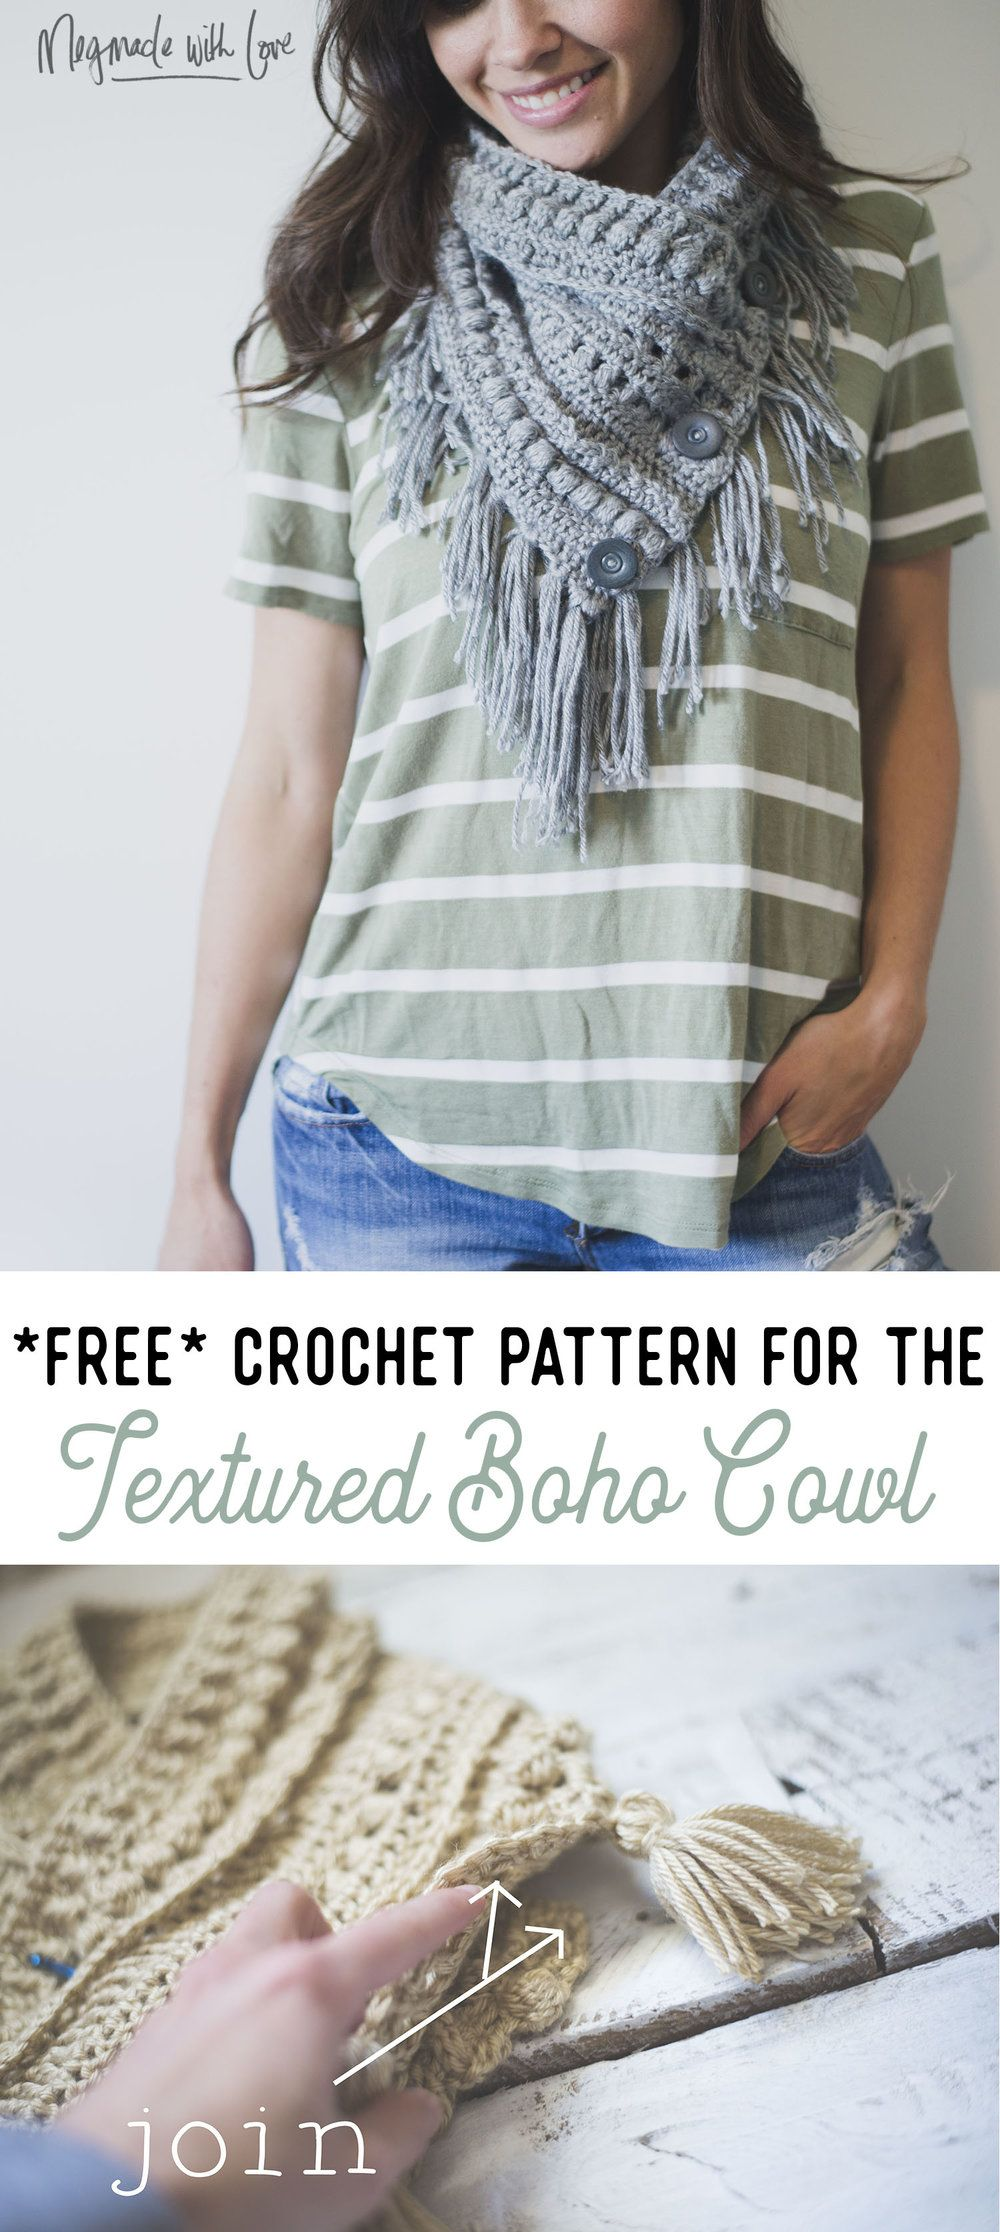 Free Crochet Pattern for the Textured Boho Cowl | Crocheting ...